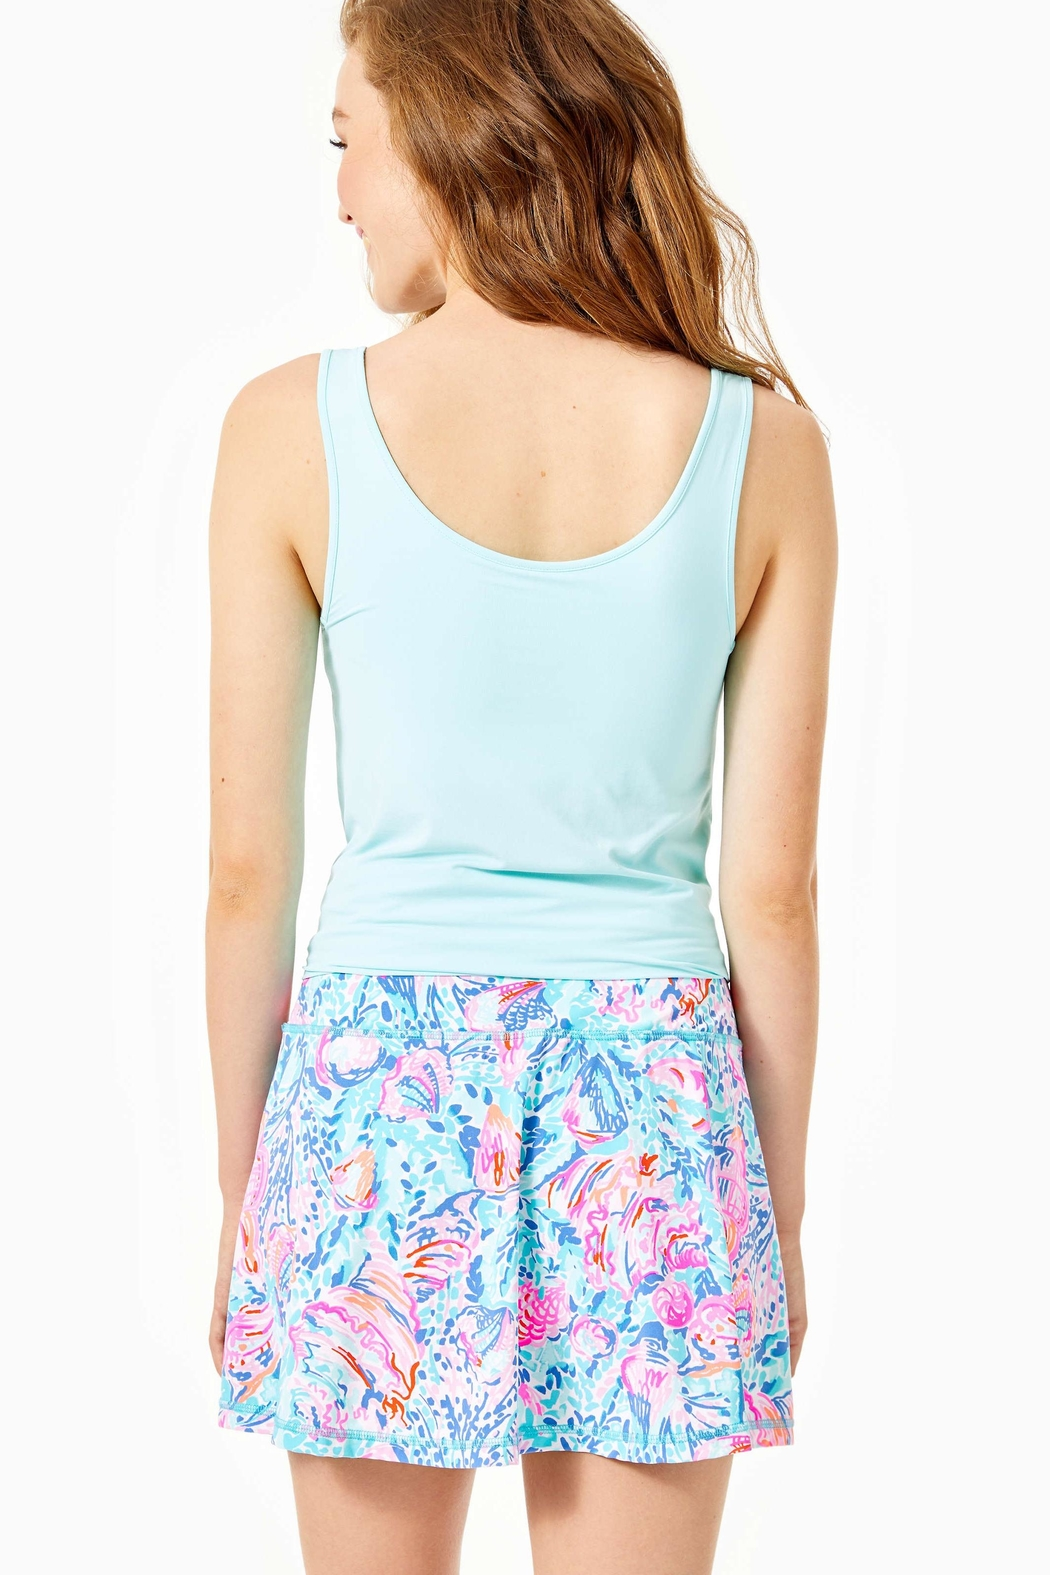 Lilly Pulitzer Luxletic Aila Skort - Front Full Image